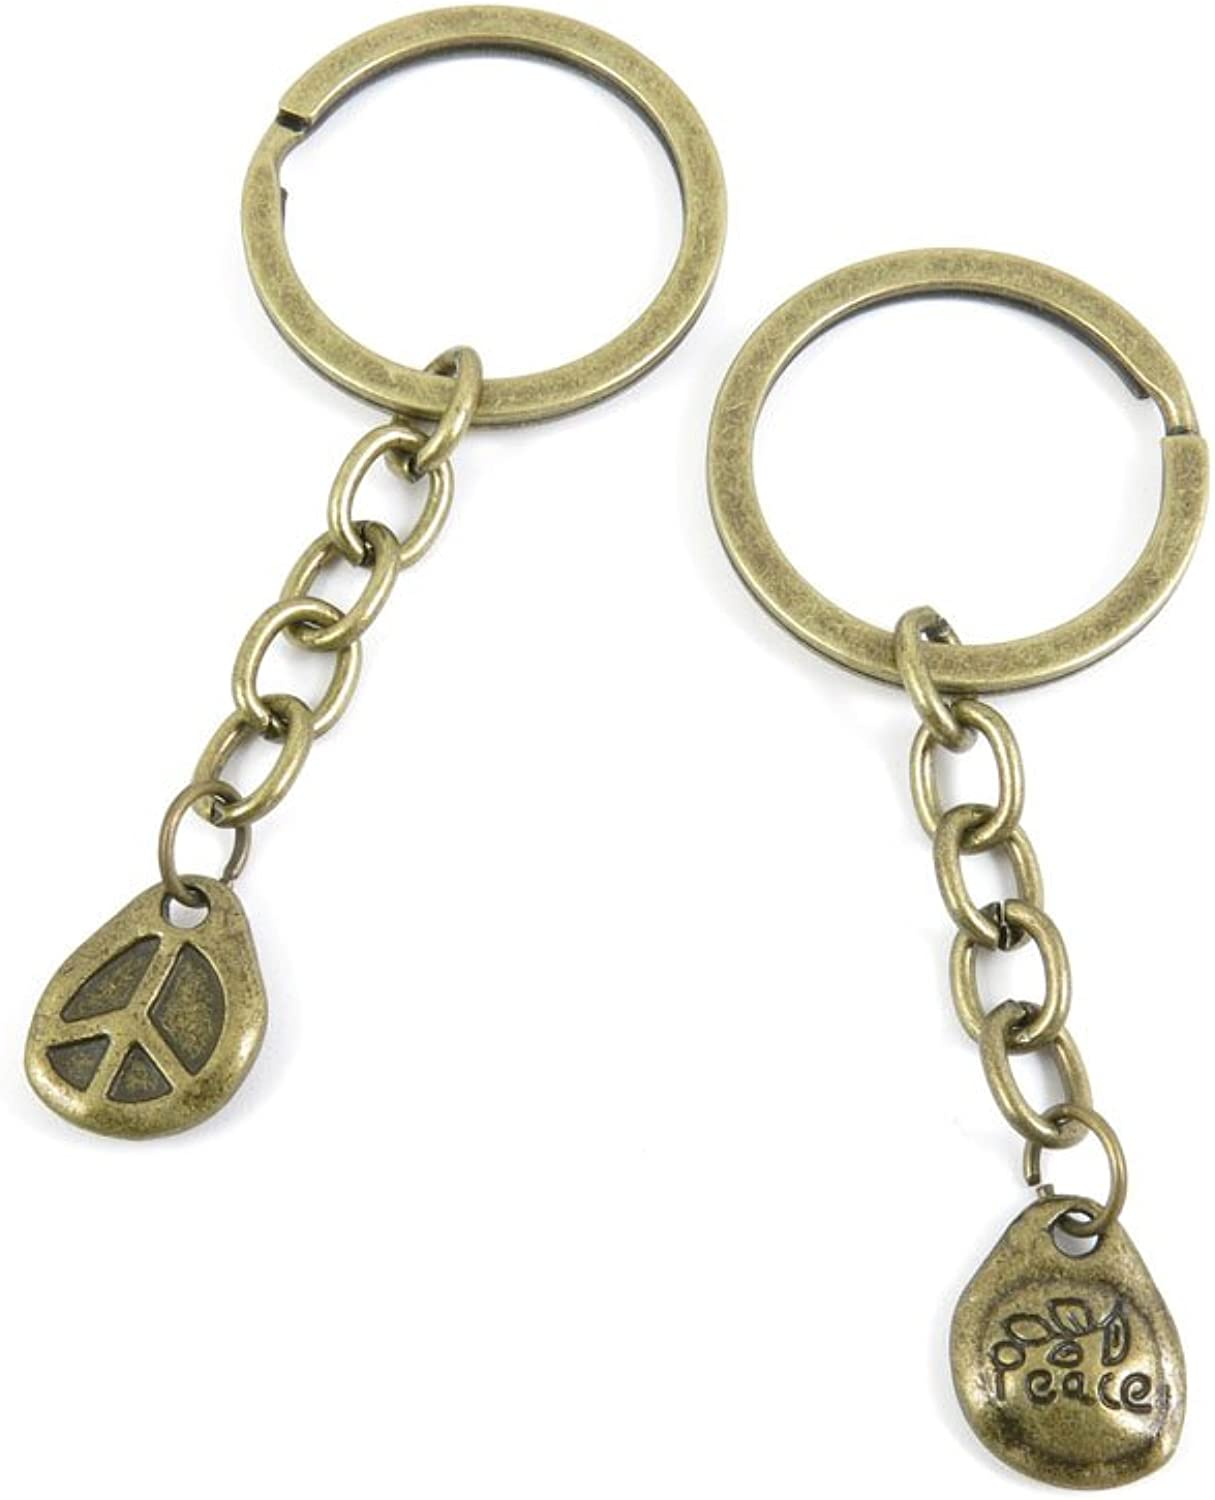 100 PCS Keyrings Keychains Key Ring Chains Tags Jewelry Findings Clasps Buckles Supplies U3LI3 Peace Anti War Signs Drop